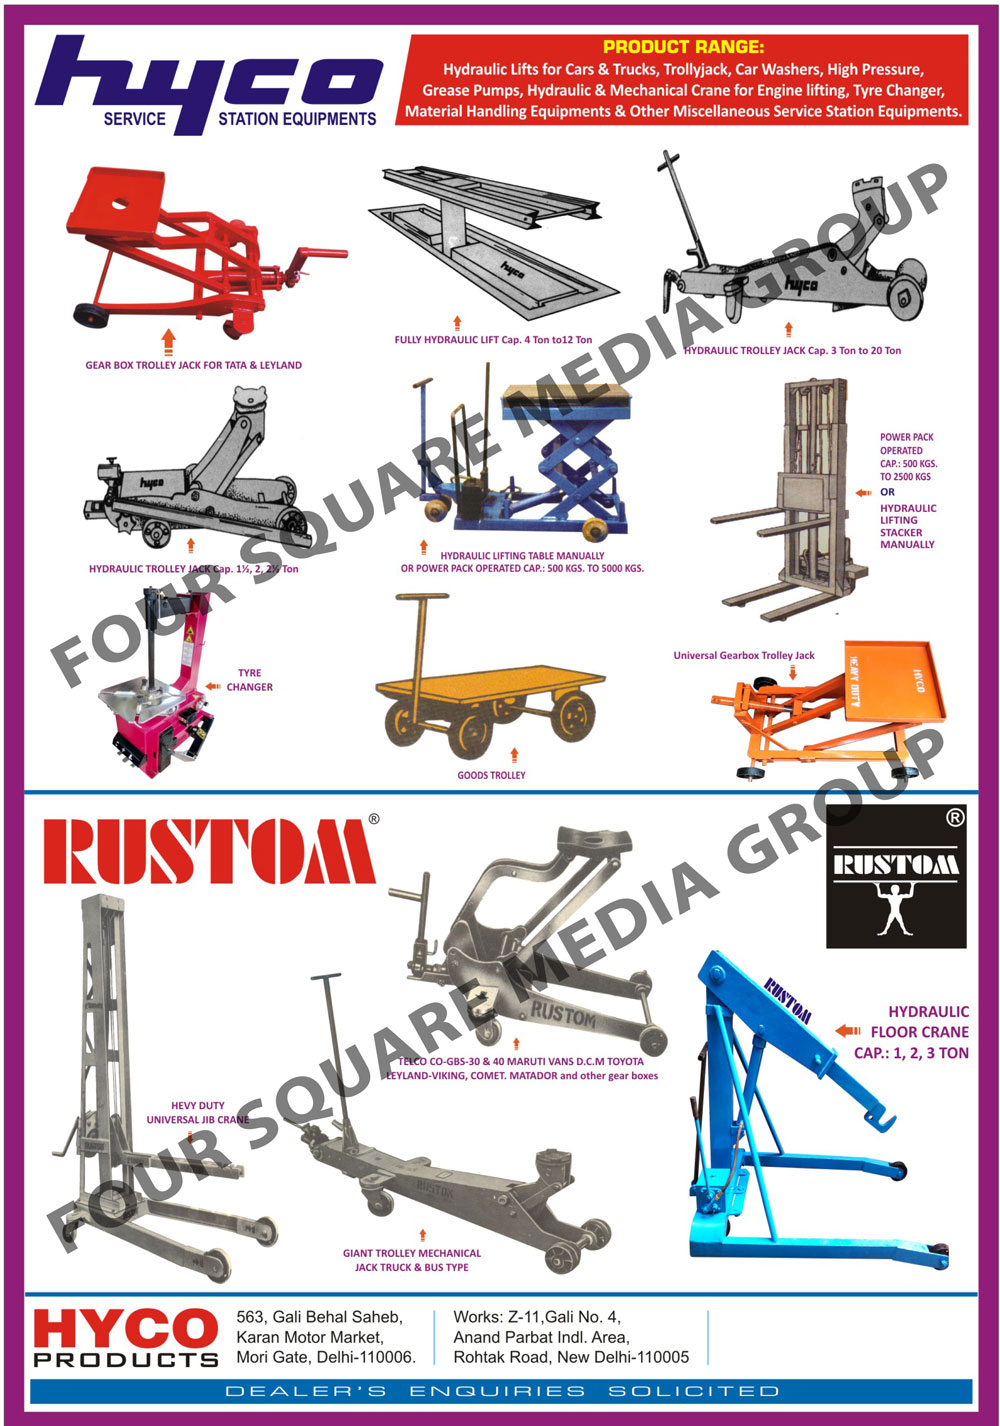 Car Hydraulic Lifts, Truck Hydraulic Lifts, Car Washers, Grease Pumps, Engine Lifting Hydraulic Cranes, Engine Lifting Mechanical Cranes, Air Compressors, Tyre Changers, Service Station Material Handling Equipments, Miscellaneous Service Station Equipments, Miscellaneous Garage Equipments, Hydraulic Trolley Jacks, Gear Box Trolley Jacks, Hydraulic Lifting Tables, Universal Jib Cranes, Tyre Changers, Hydraulic Floor Cranes, Goods Trolley, Hydraulic Pallet Trucks, Hydraulic Lifting Stacker, Fully Hydraulic Lifts, Automotive Jacks,